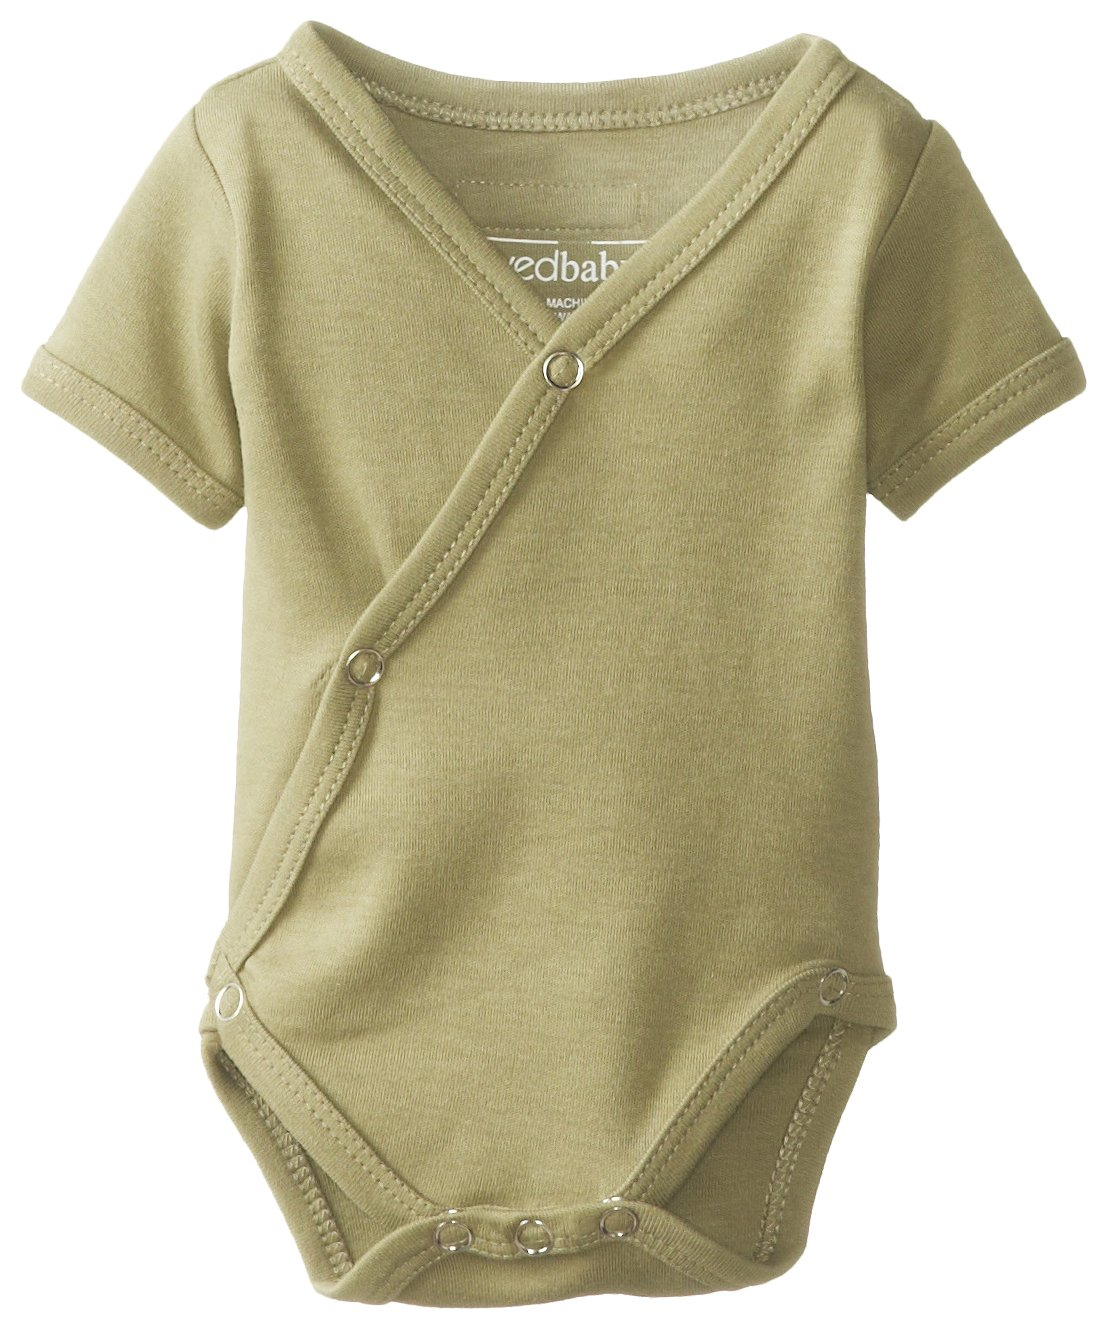 L'ovedbaby Unisex-Baby Organic Cotton Kimono Short Sleeve  Bodysuit, Sage, 0/3 Months by L'ovedbaby (Image #1)